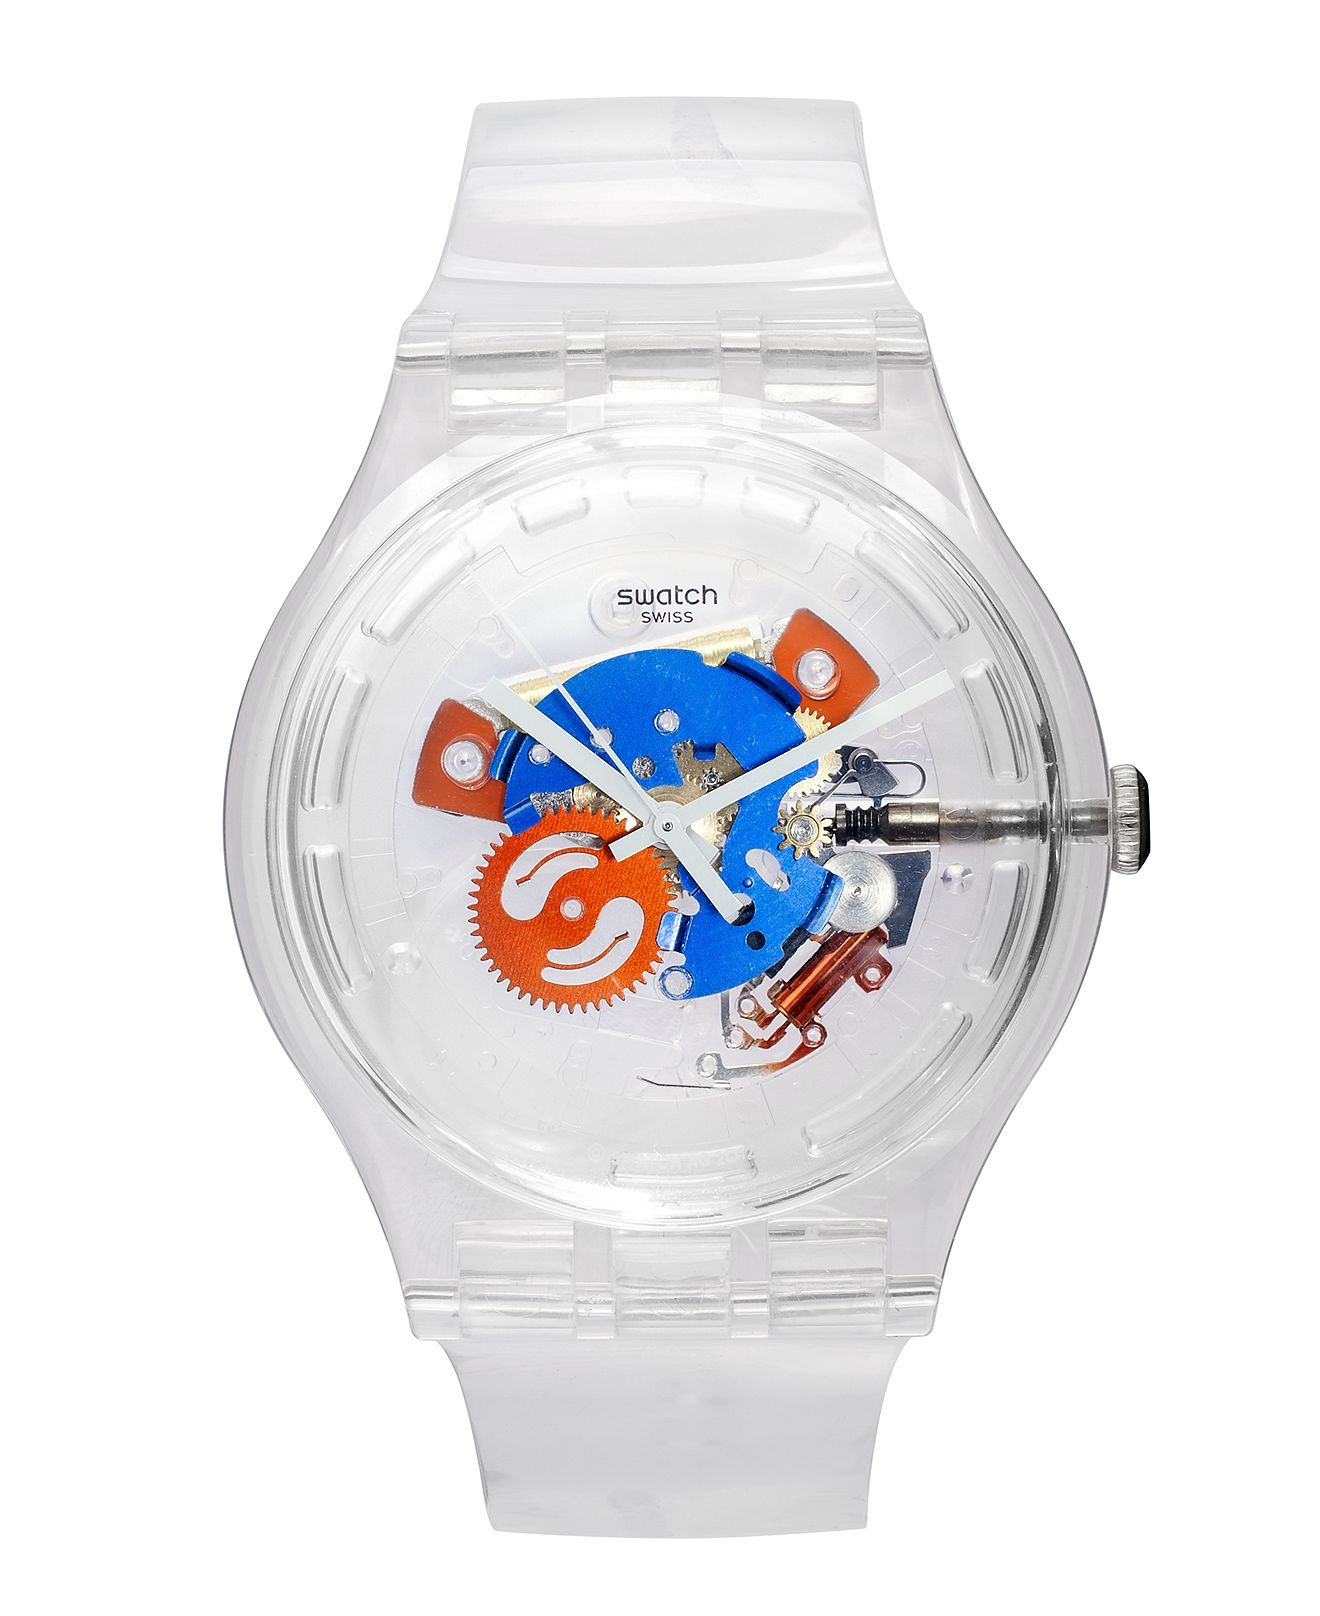 products hodinkee vintage a watches hodxswatch shop switch